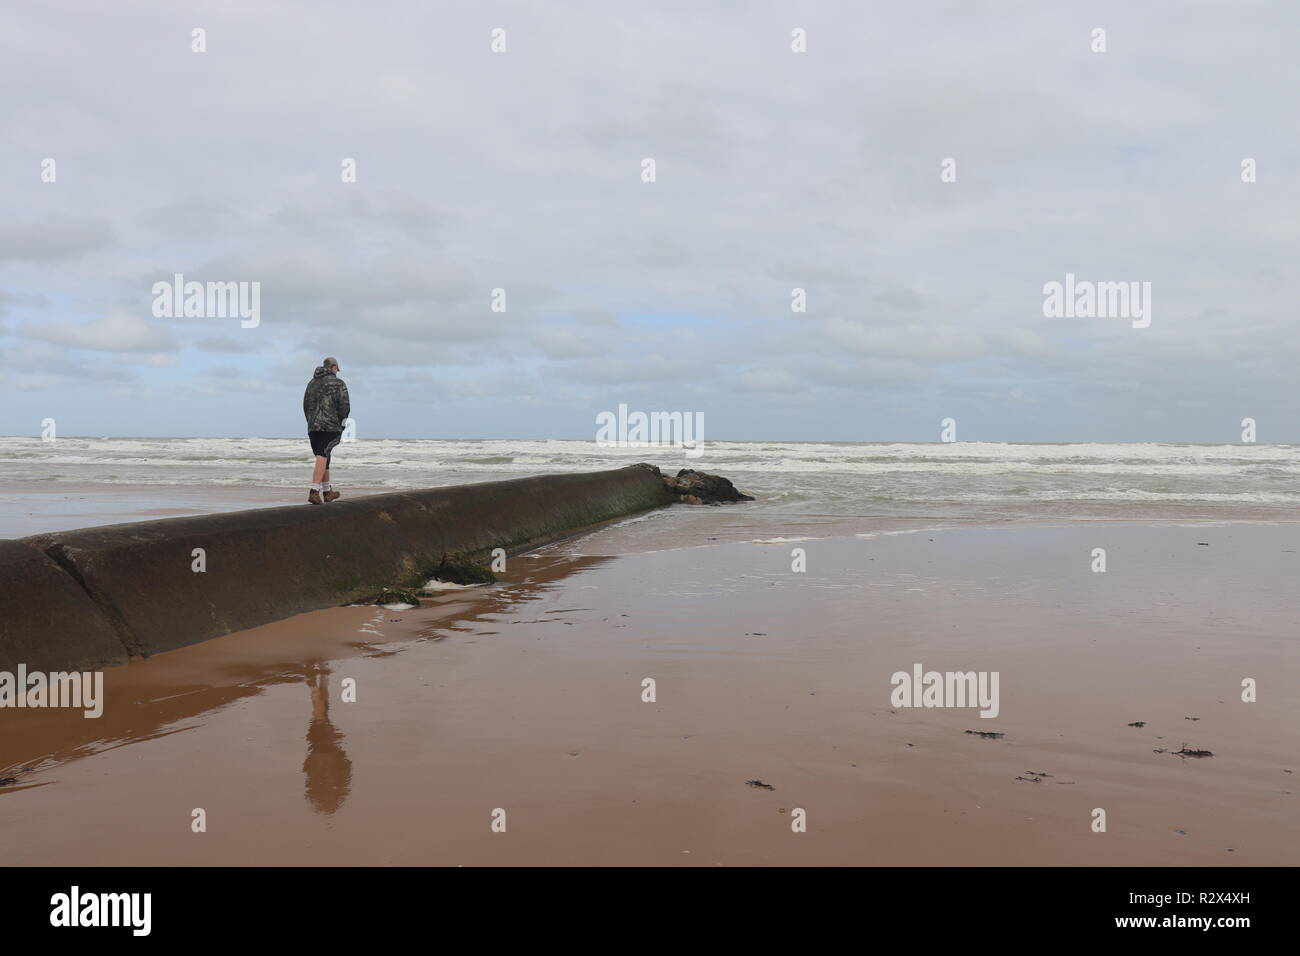 Omaha Beach in Normandy France - Stock Image